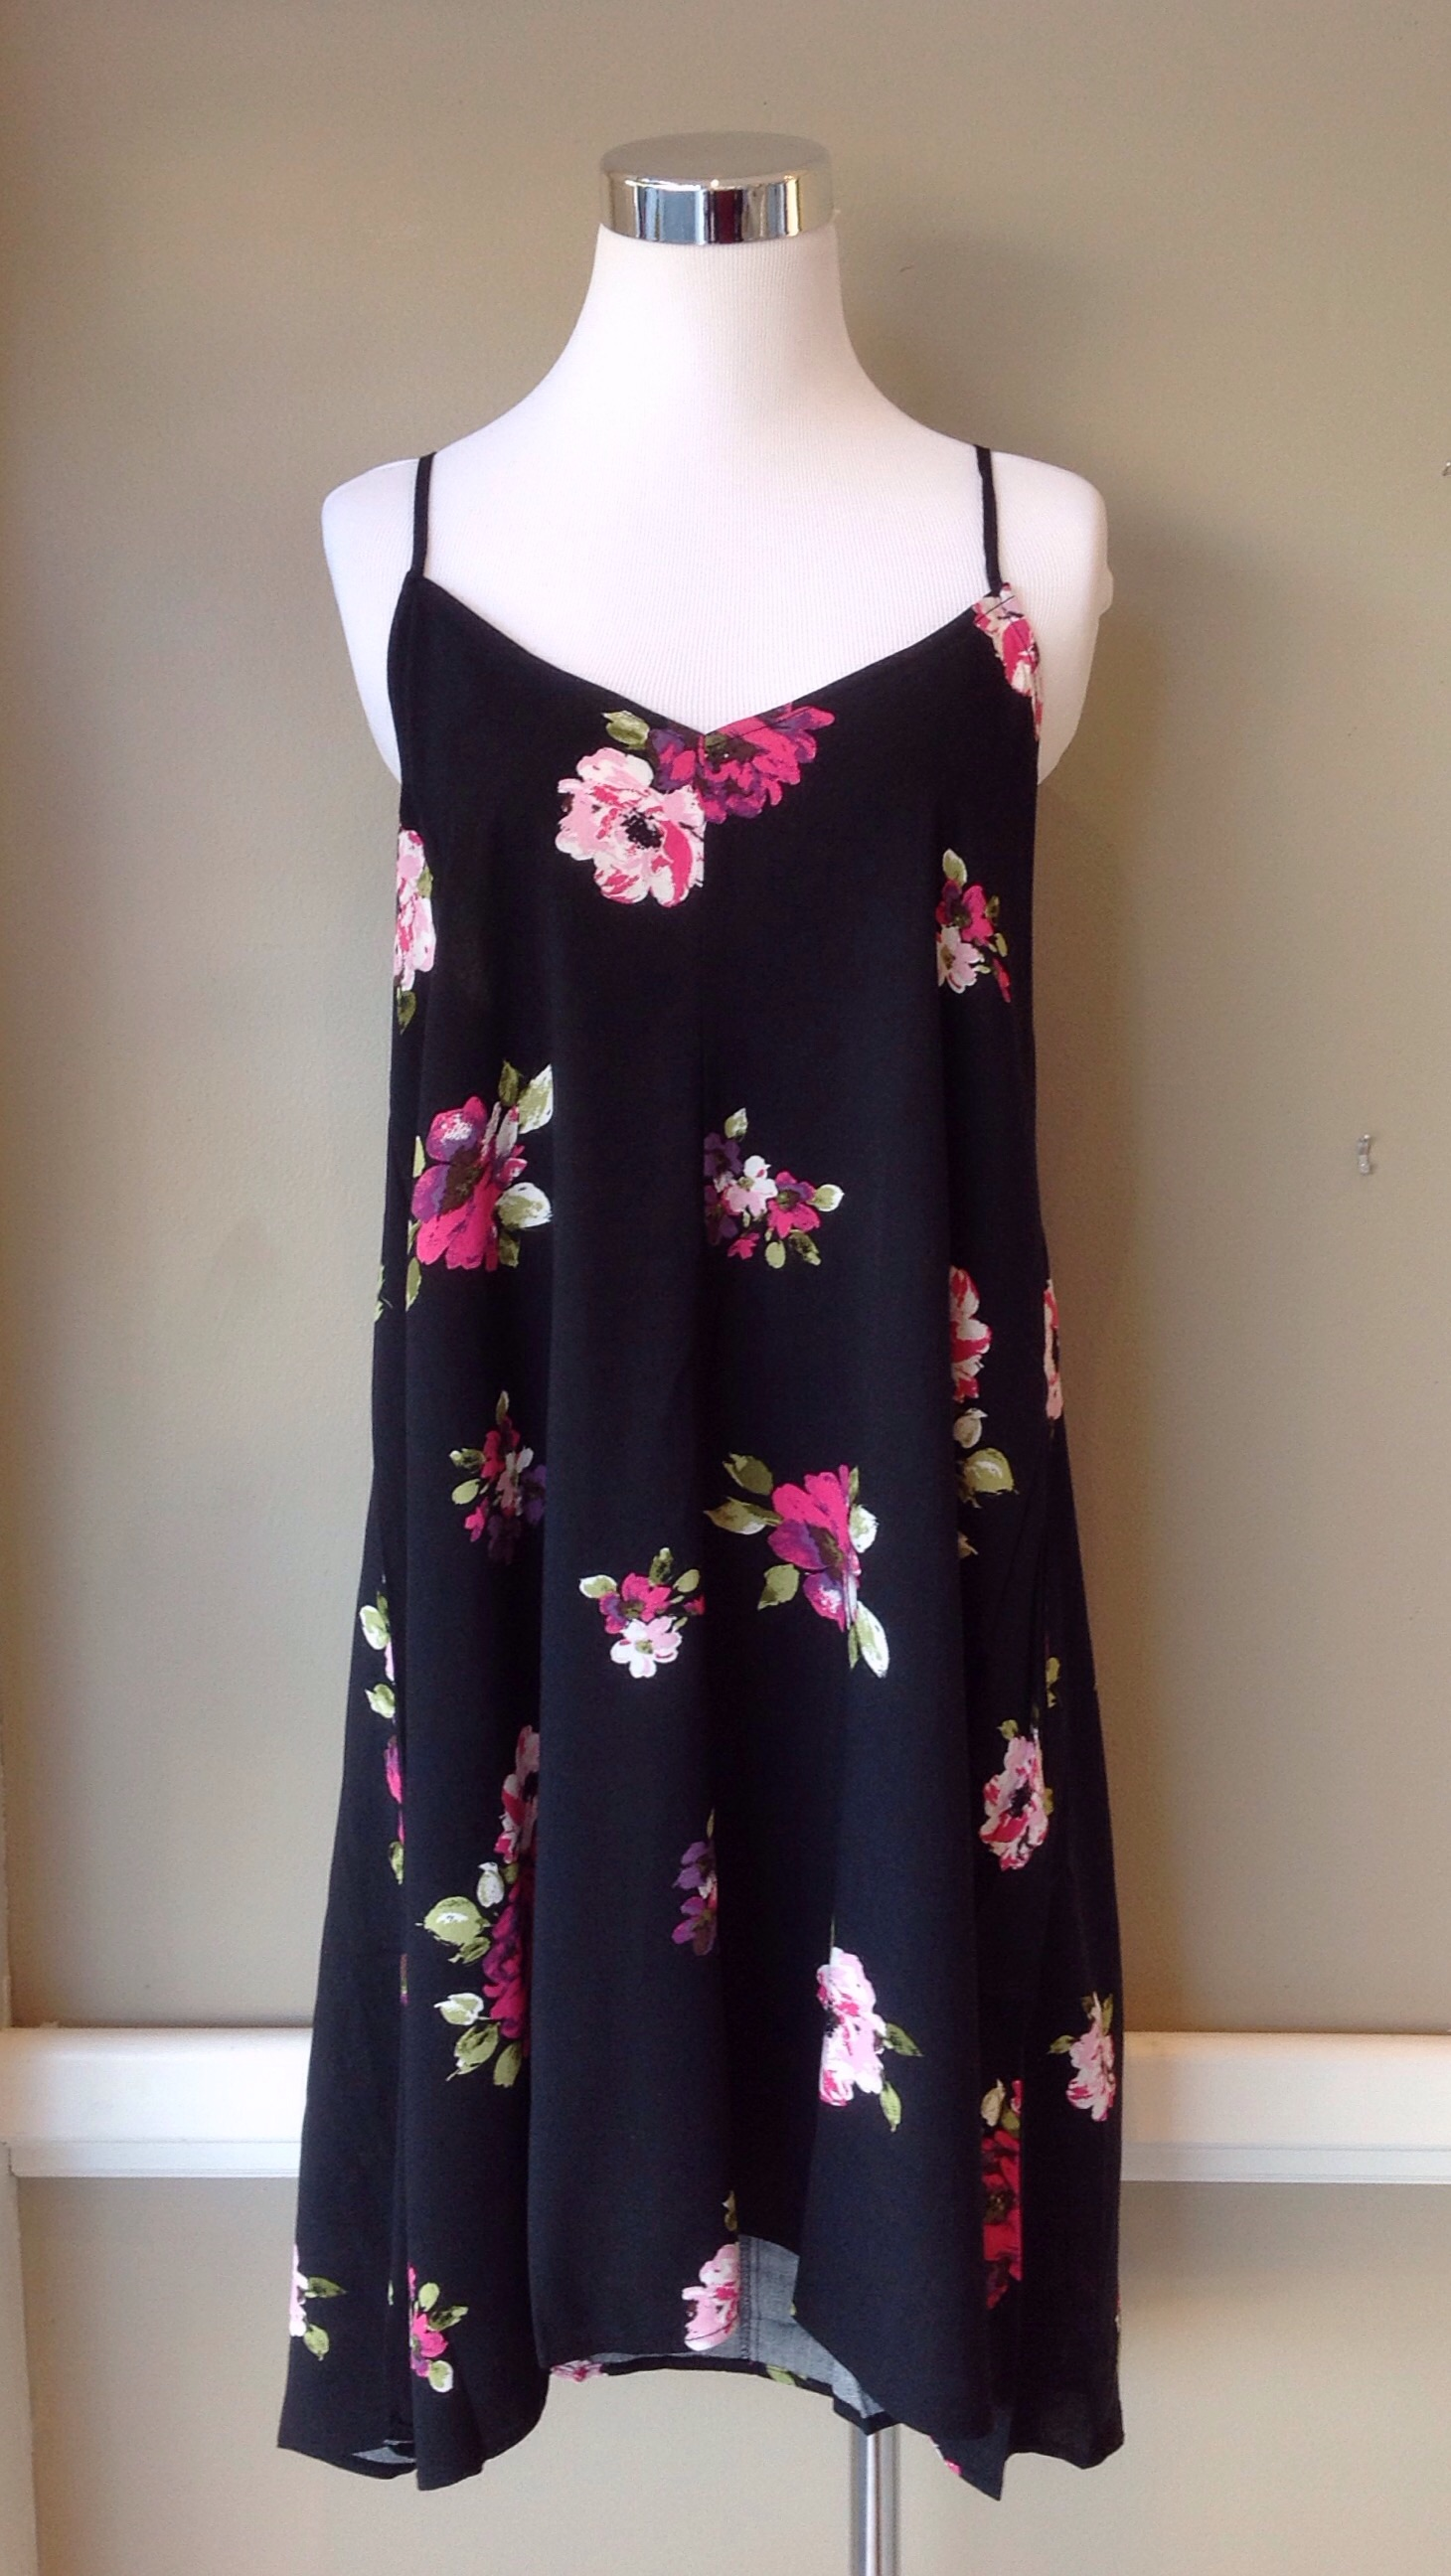 Floral tank dress in black multi, $35